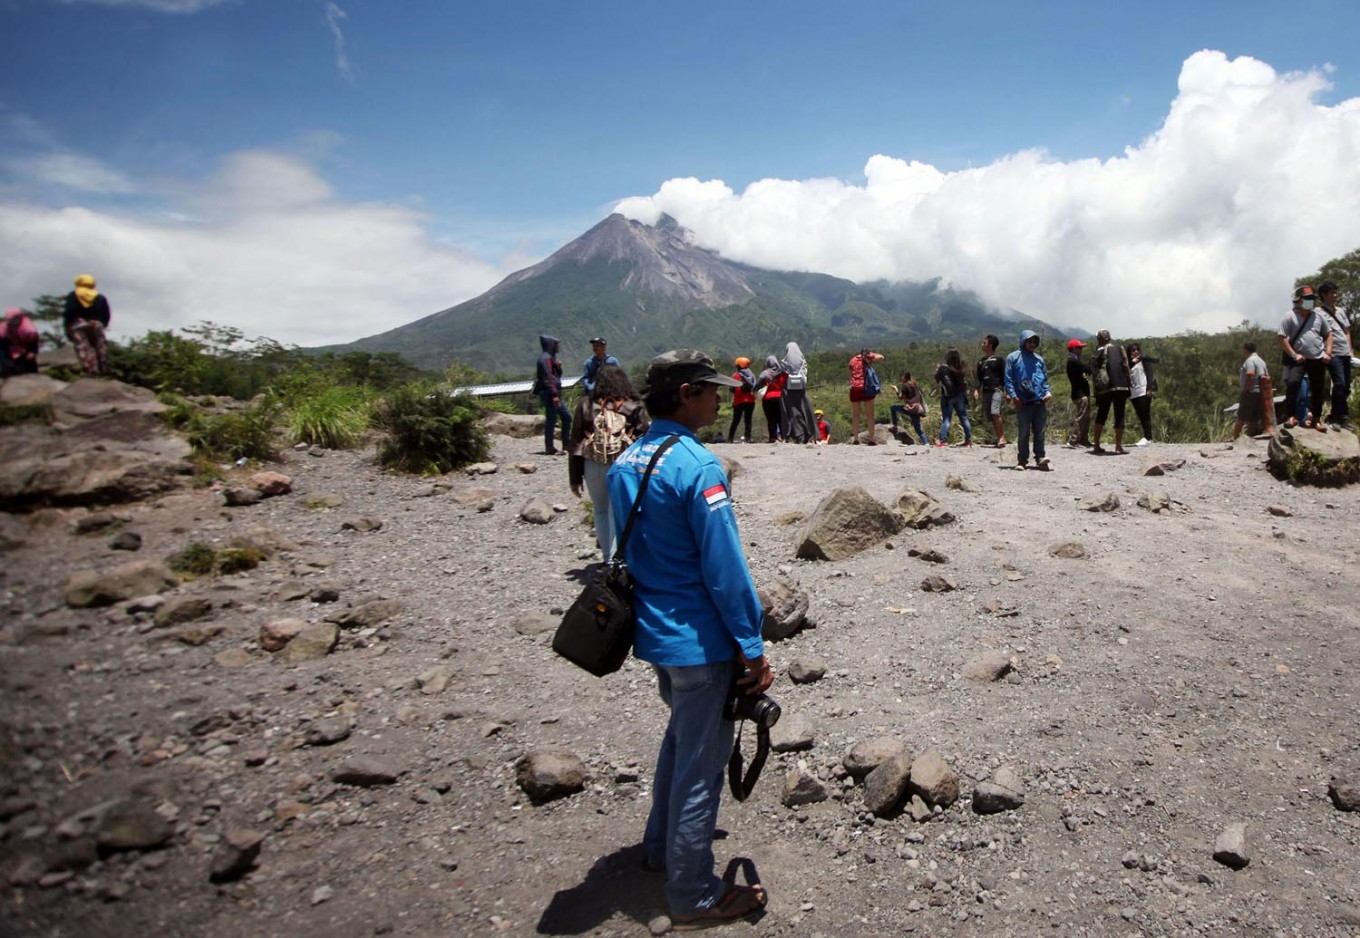 Making money by immortalizing mount Merapi